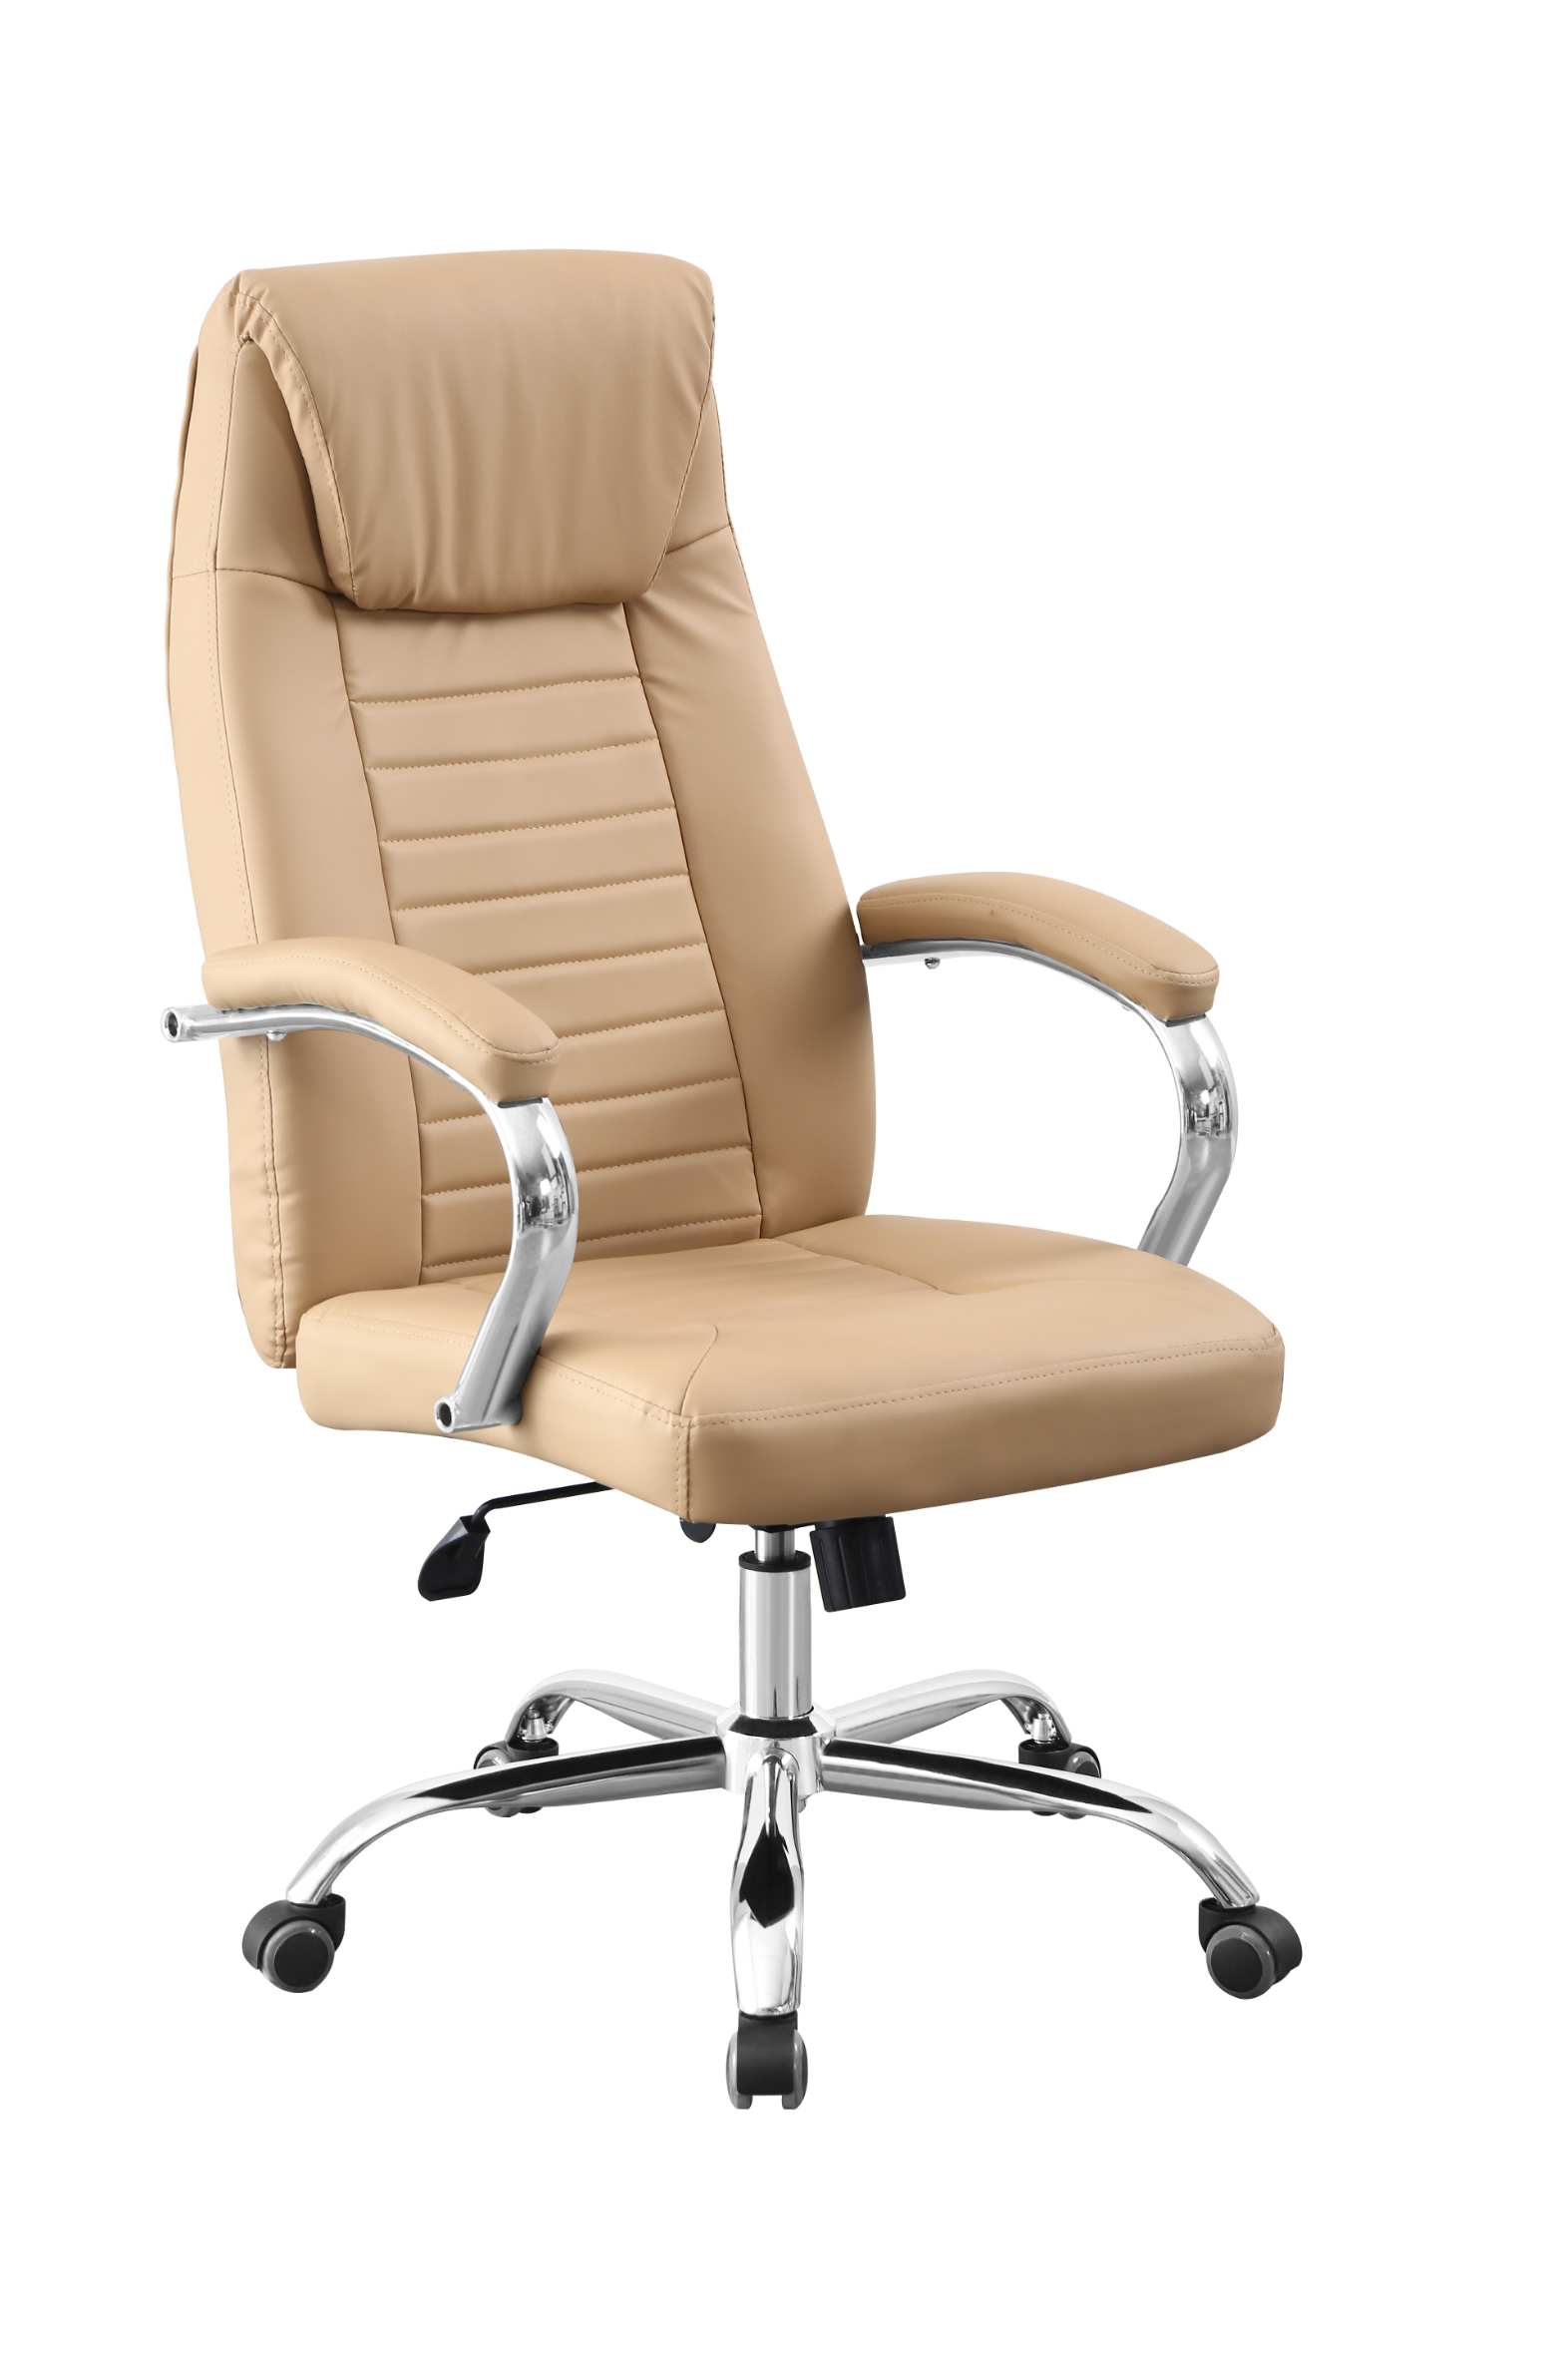 E-commerce supplies 2021 new office chairs to help you sell hot, comfortable leather seats with 360 ° rotation and up and down adjustment